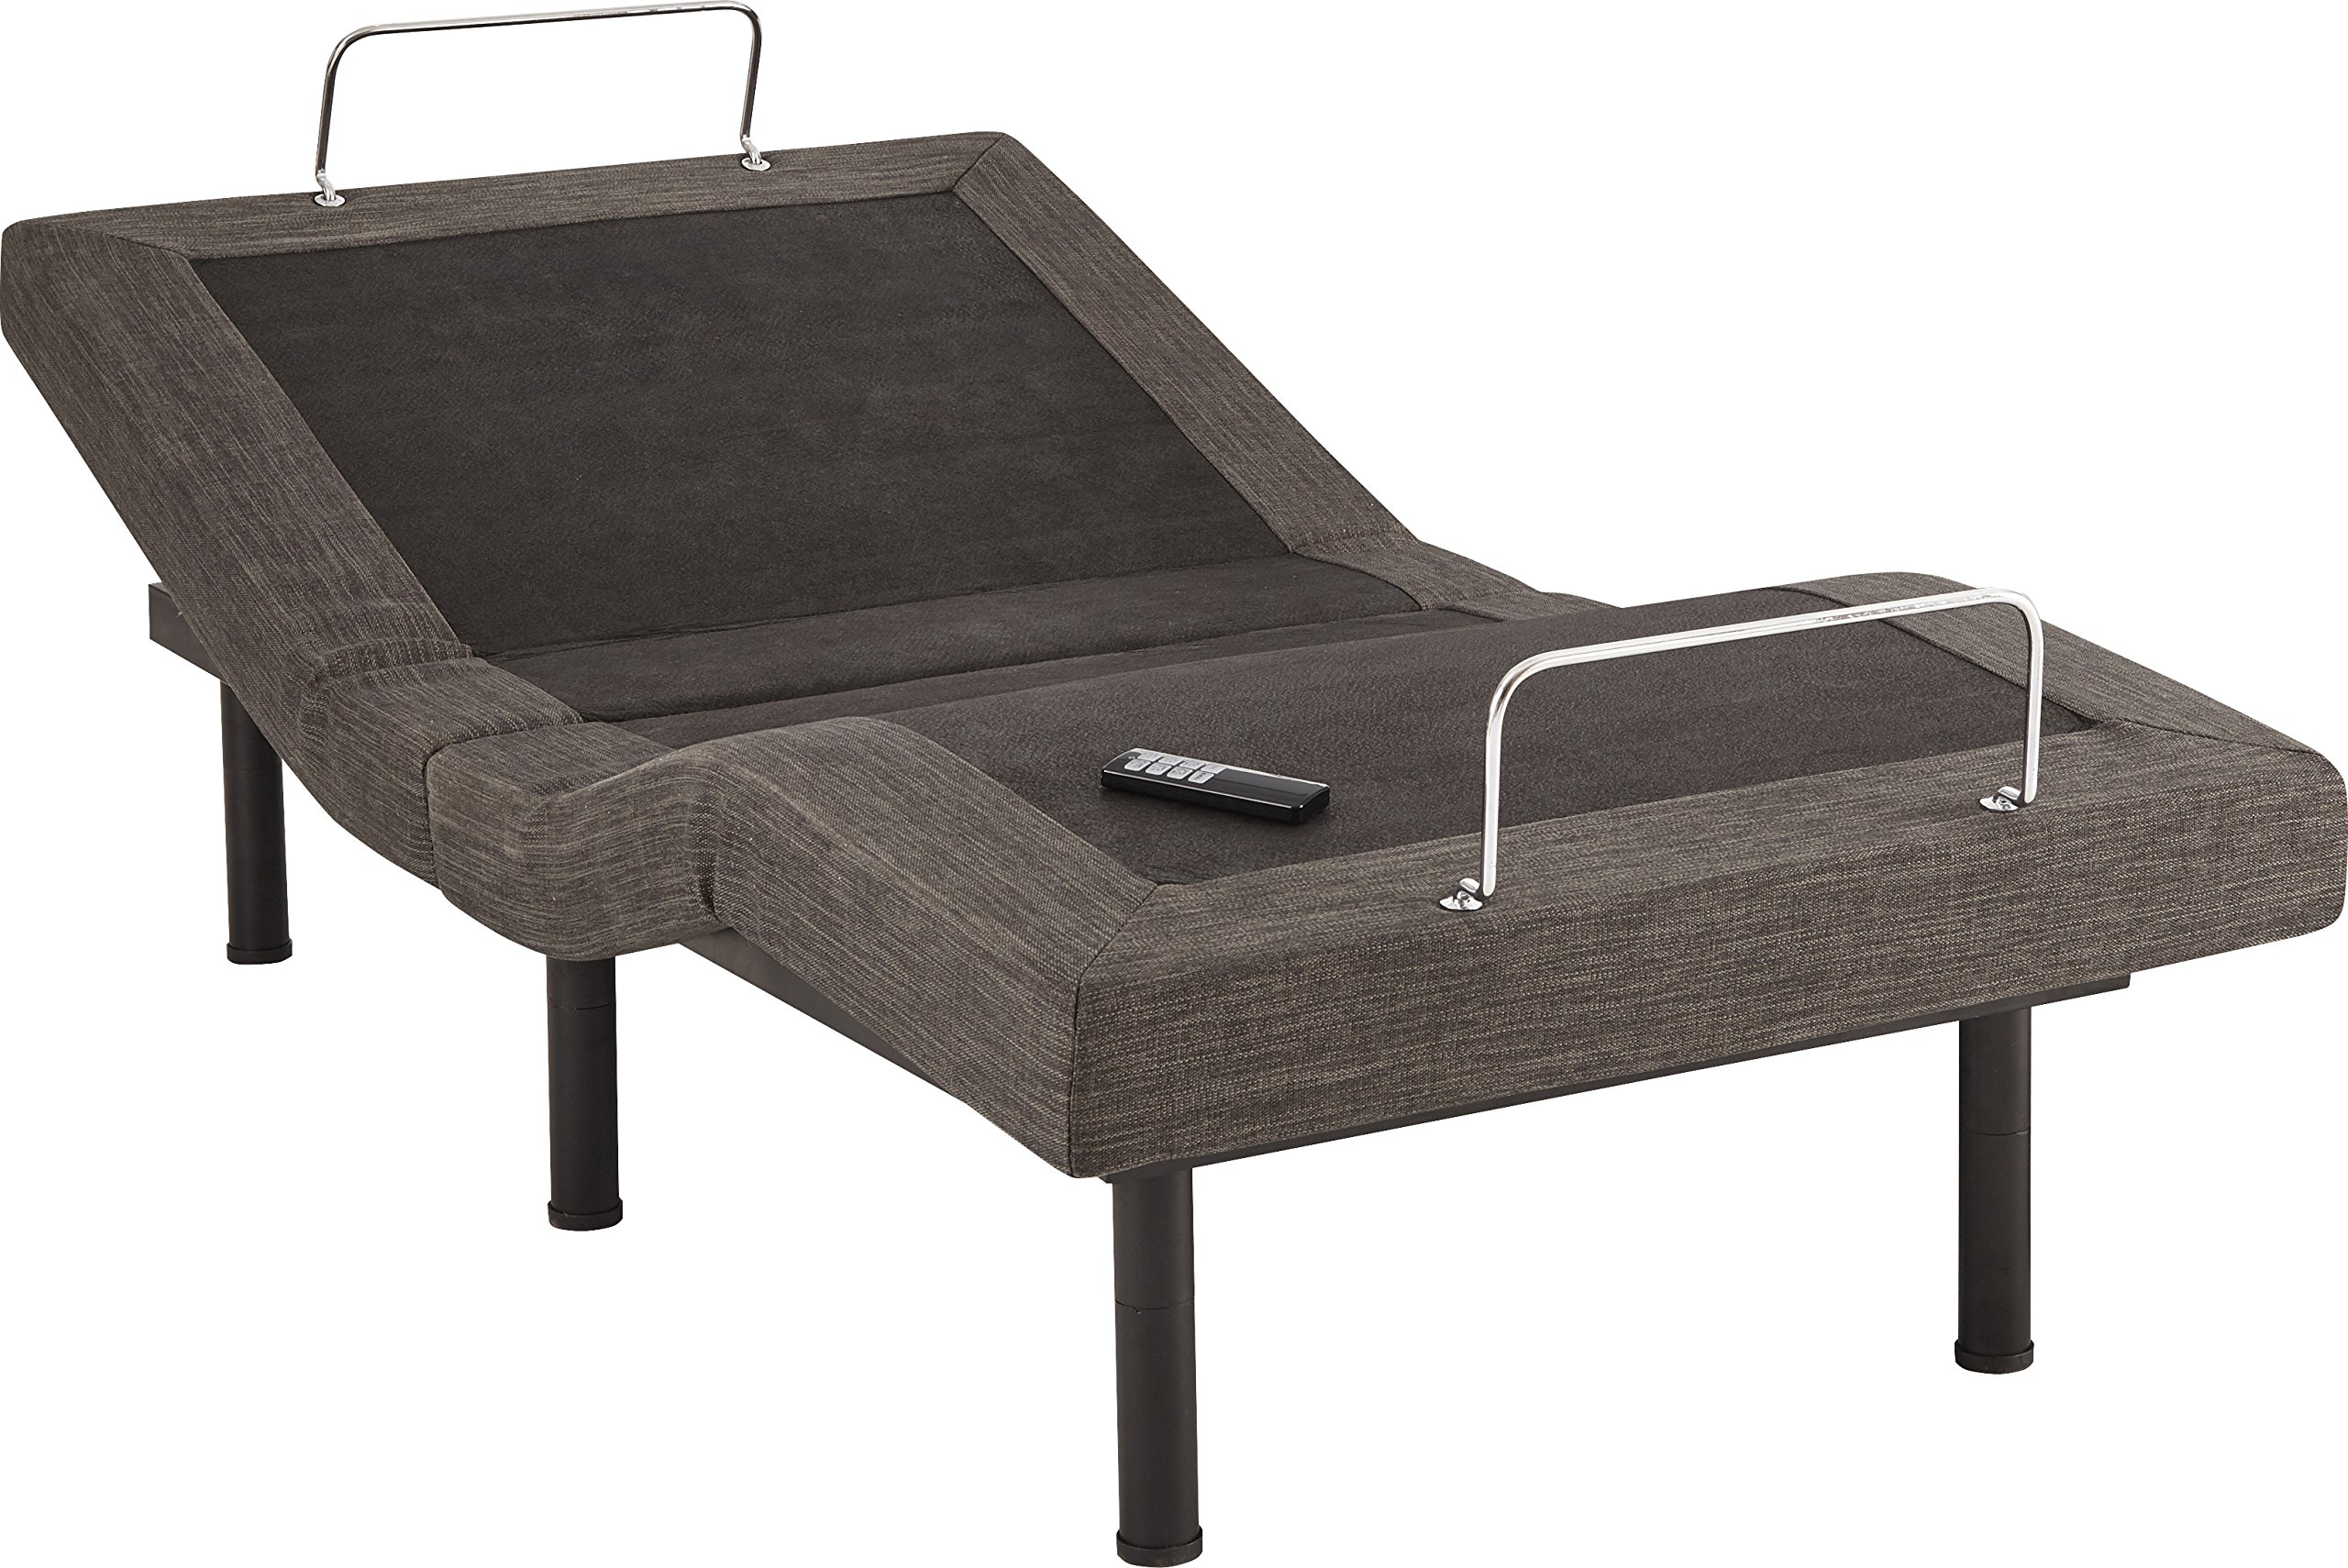 Flex Form Lifestyle Adjustable Bed Frame / Mattress Foundation with Wireless Remote, Twin XL/Split King